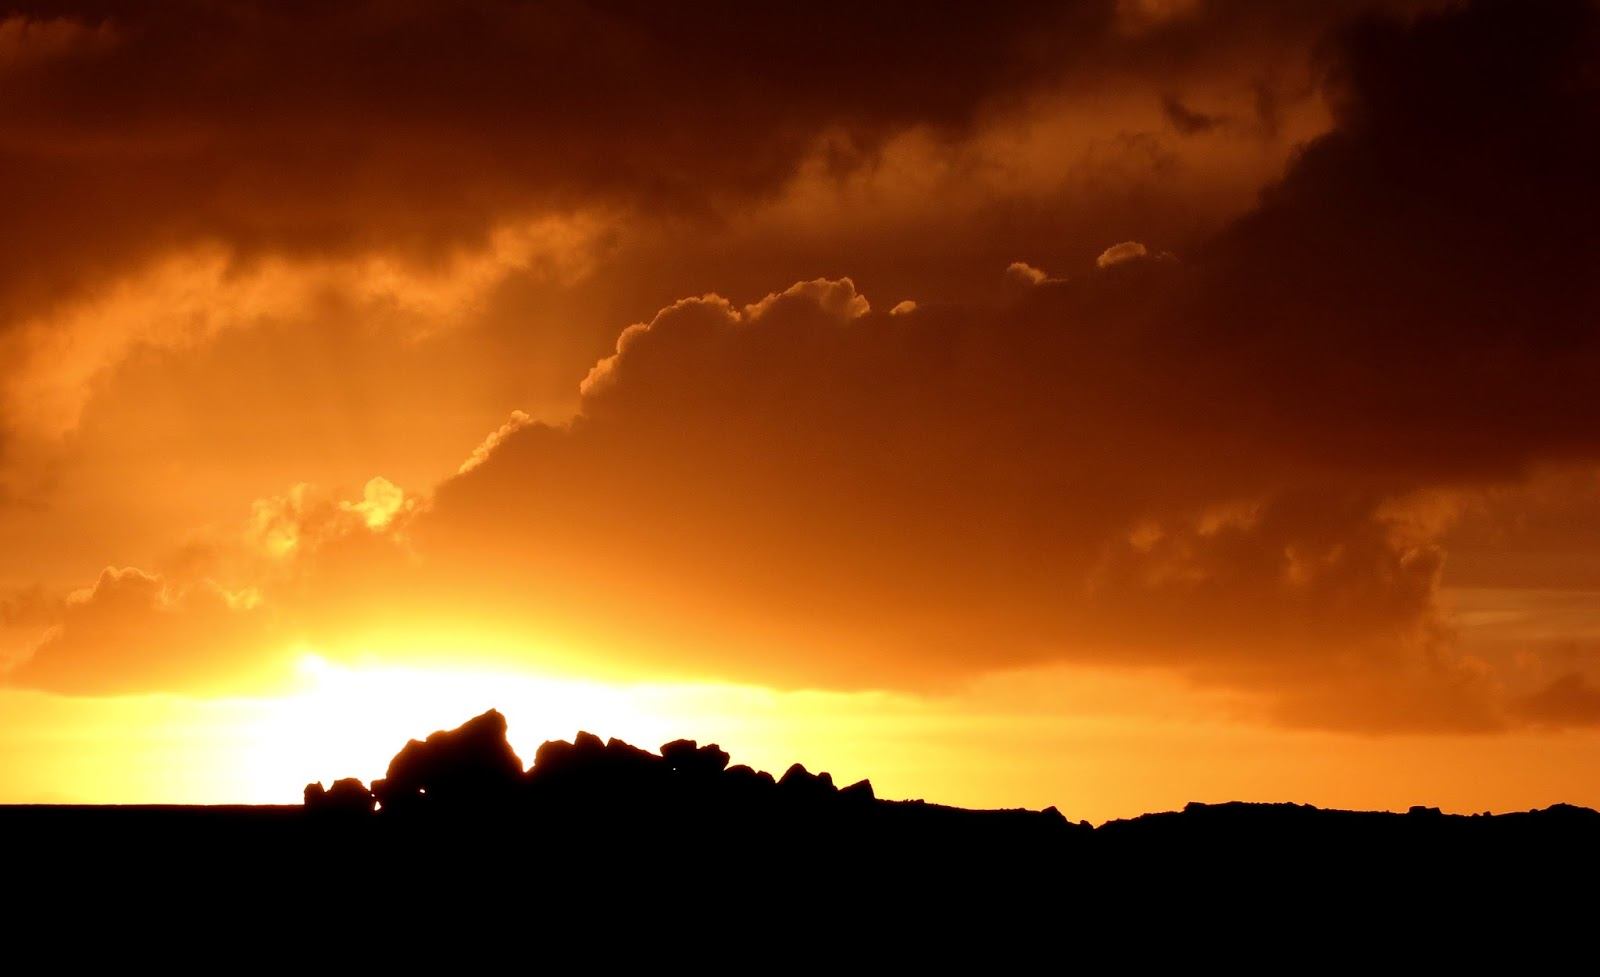 Golden sunset behind black silhouettes of quarry rocks after rain